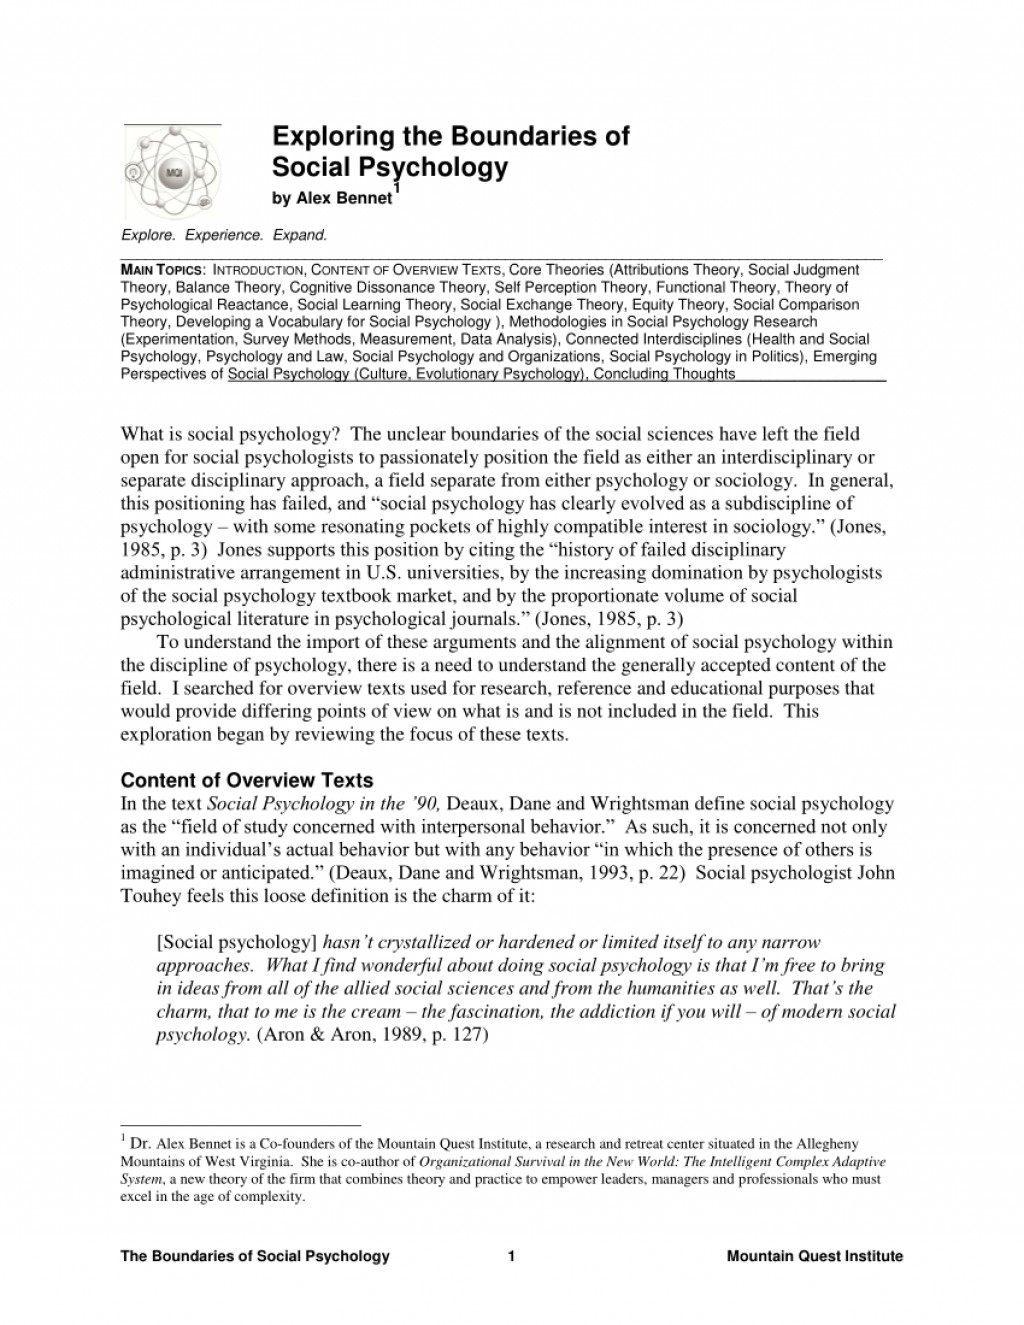 002 Largepreview Research Paper Free On Social Fascinating Psychology Large